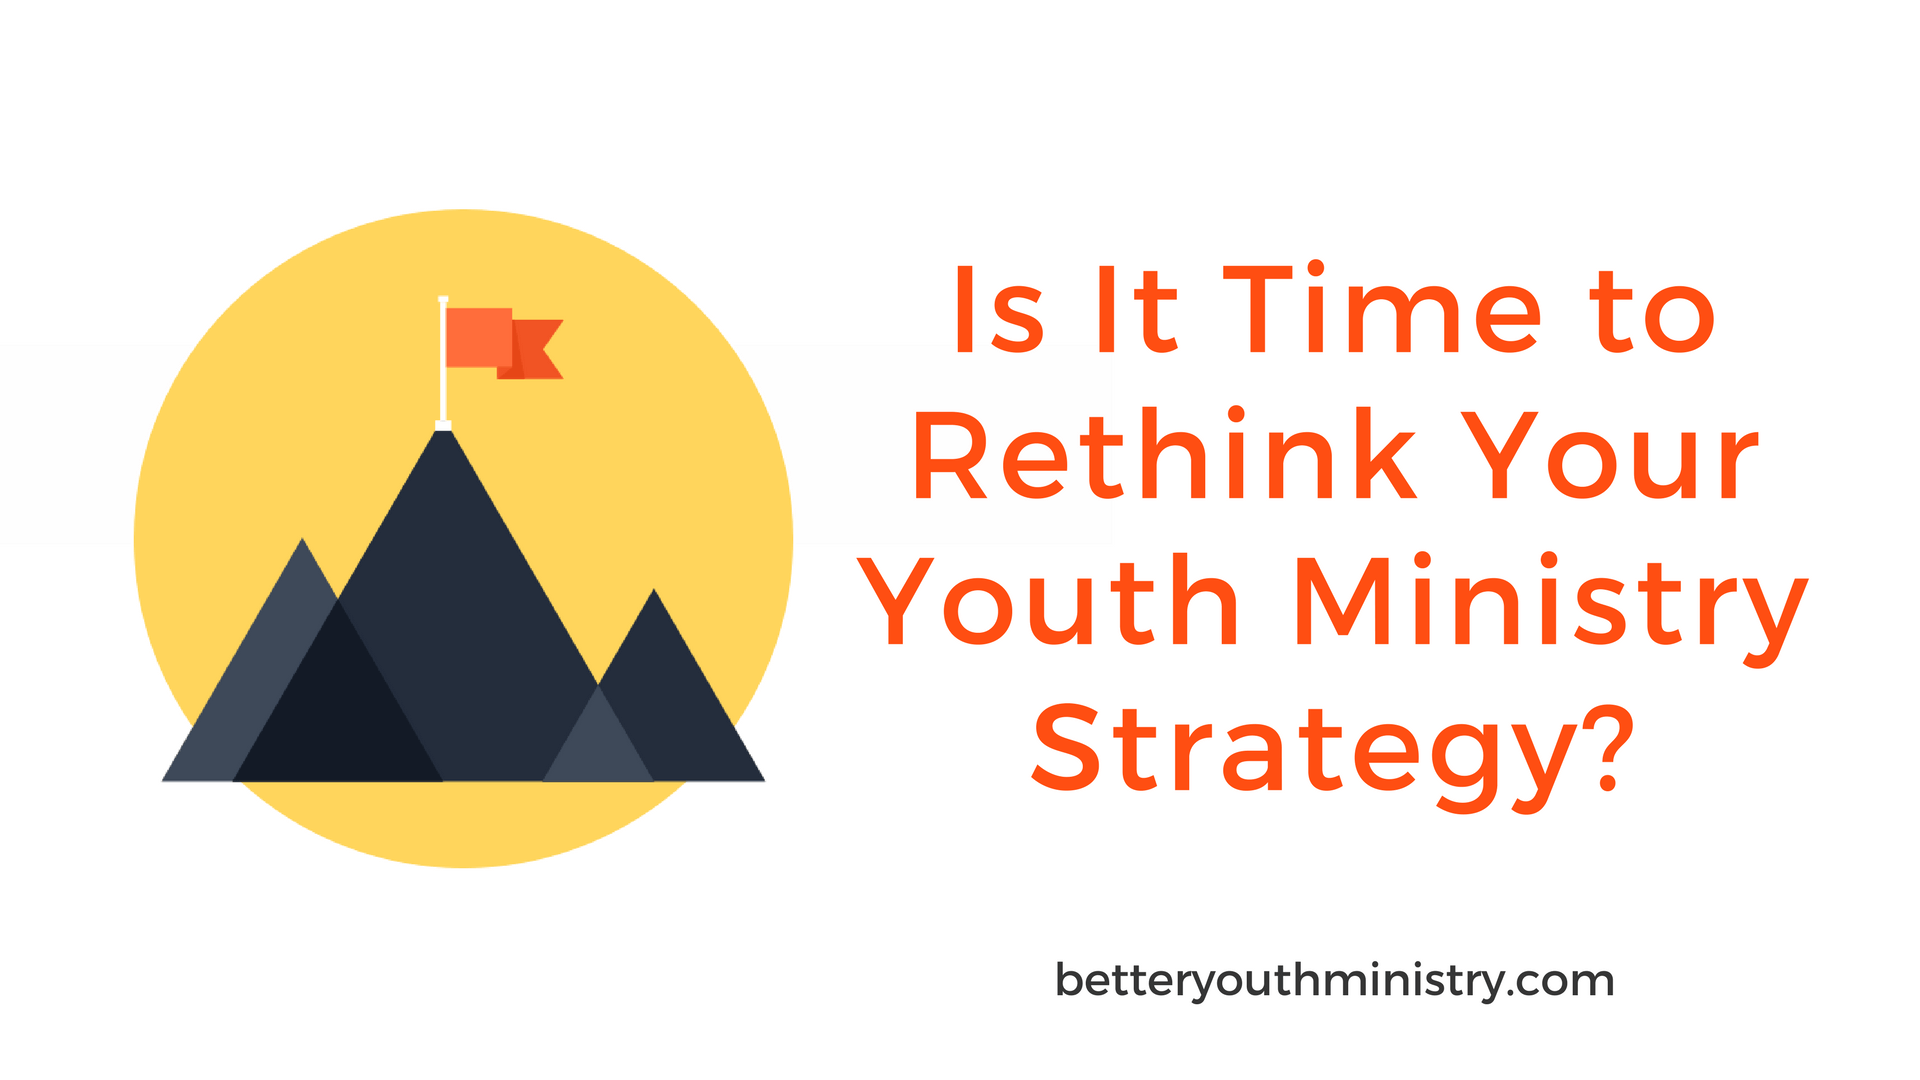 Rethink Your Youth Ministry